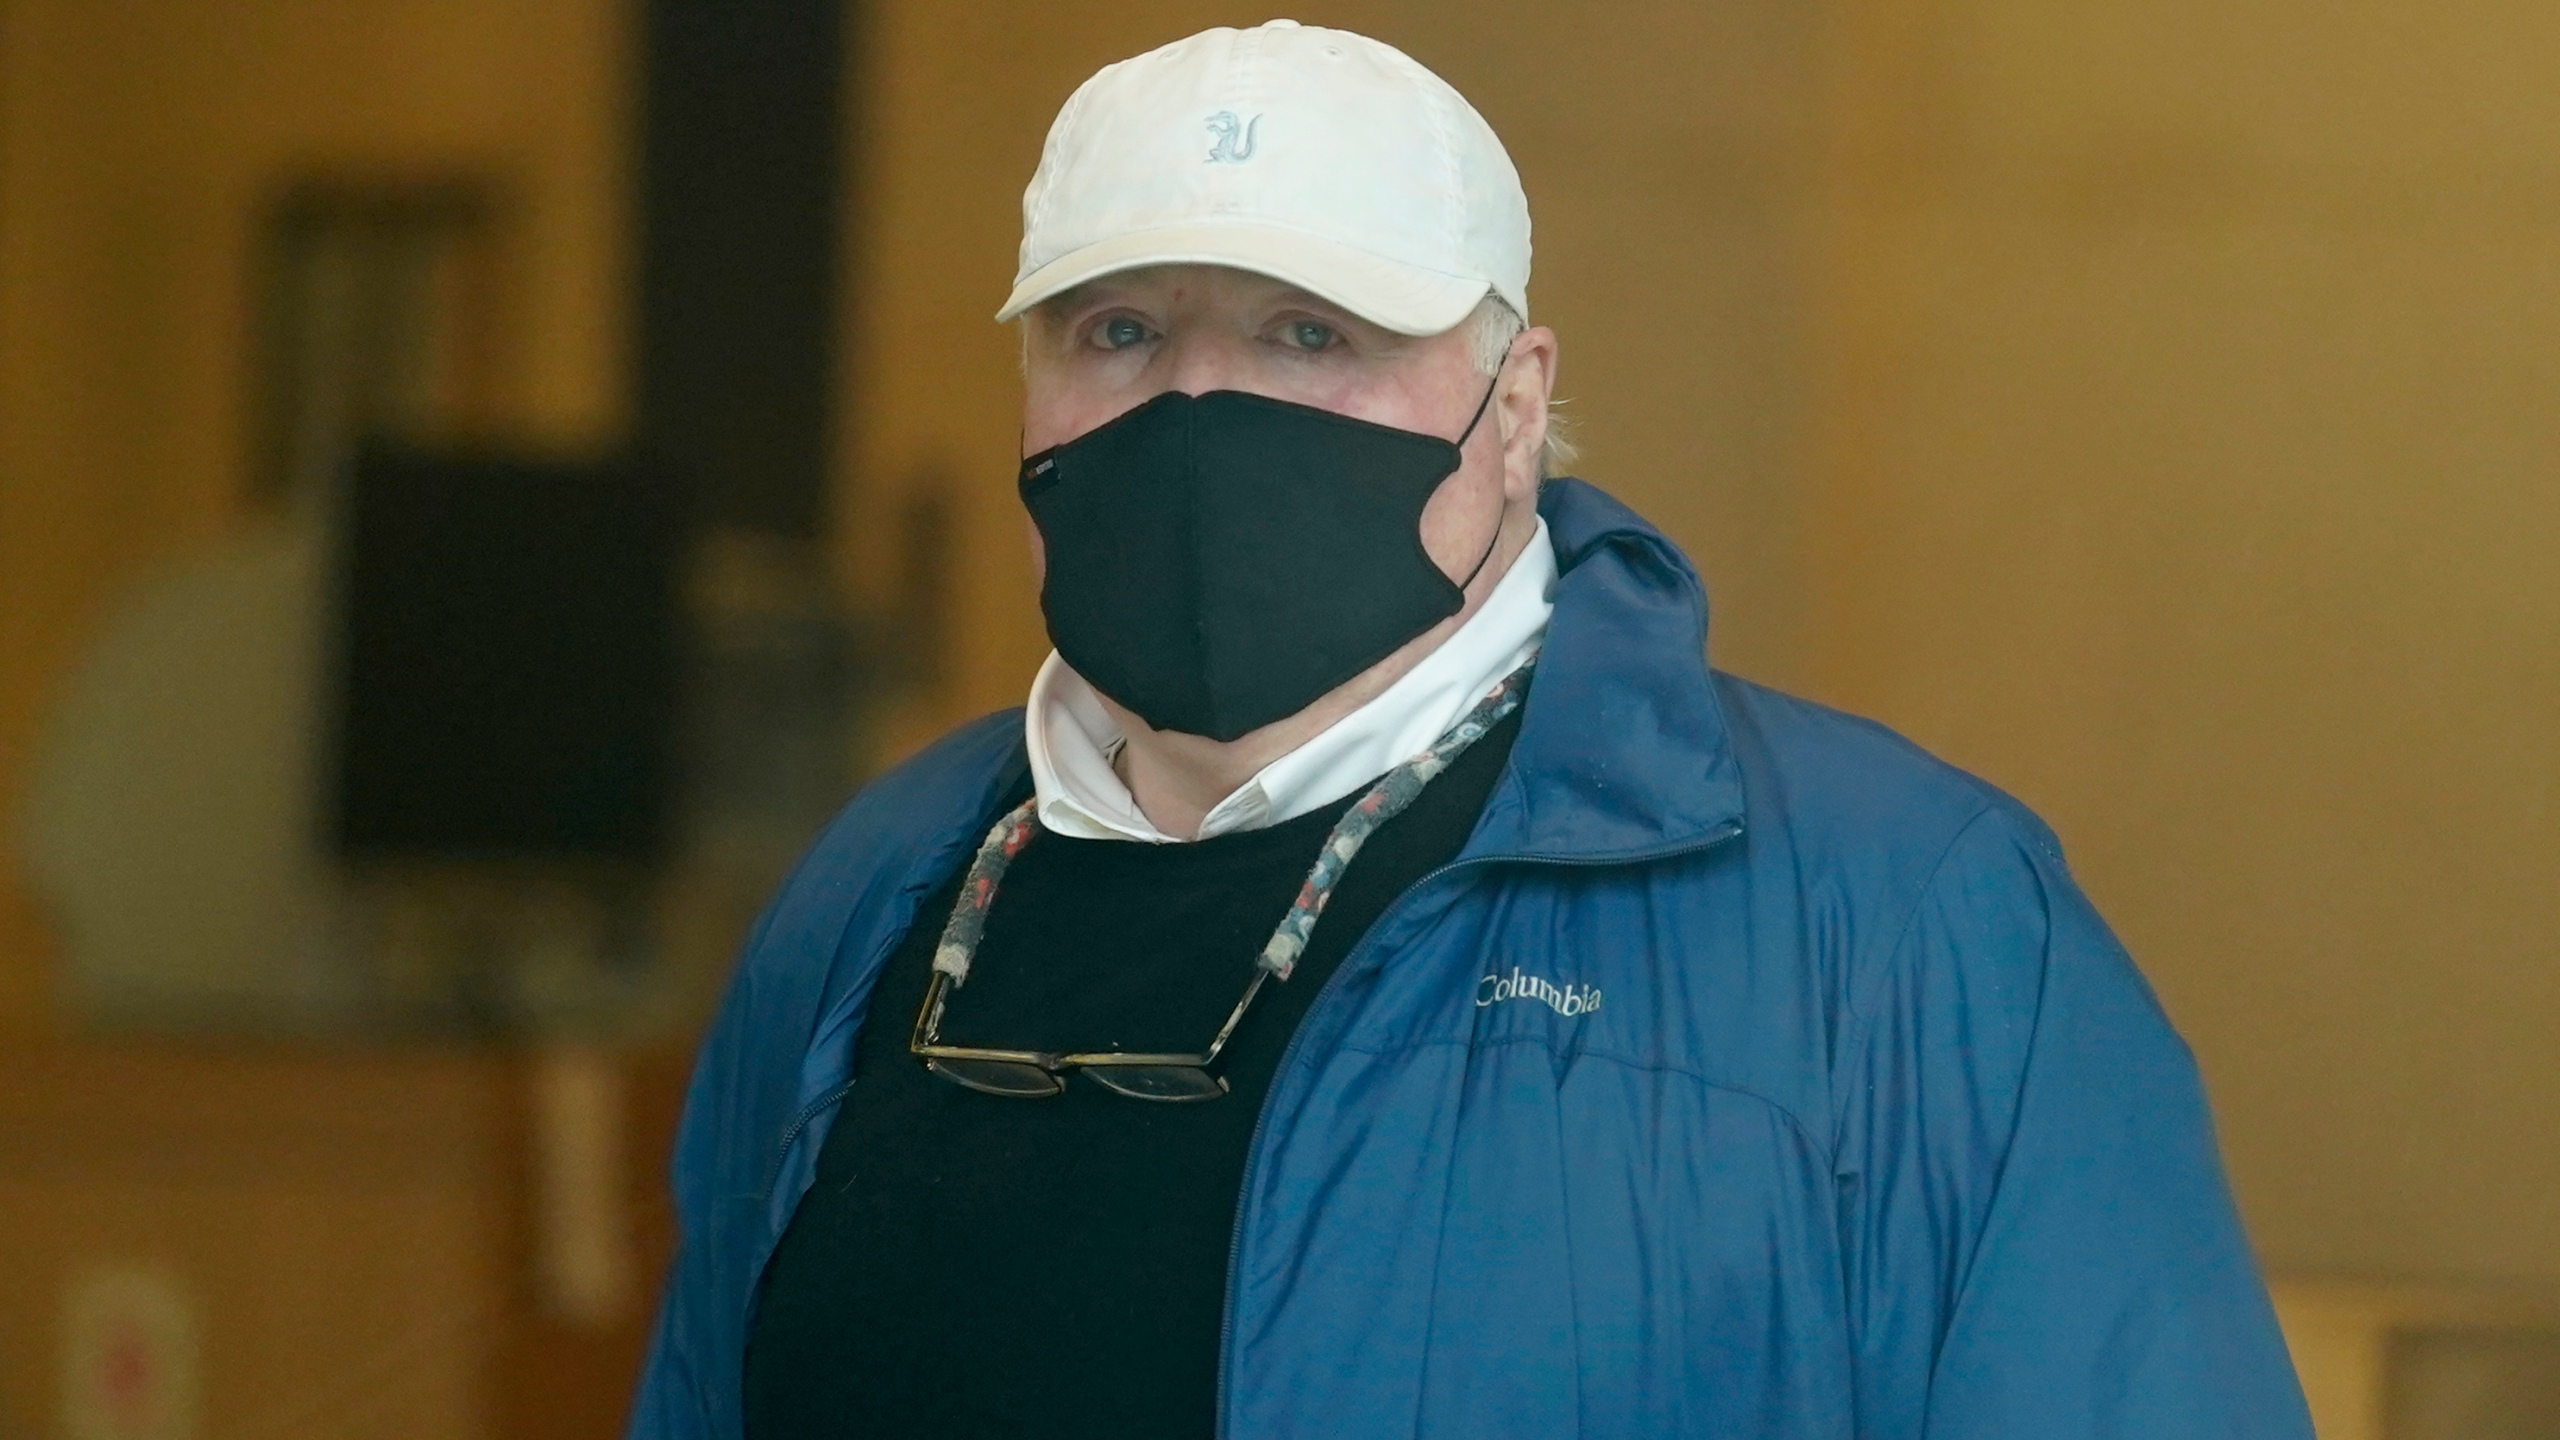 Michael Skakel arrives to a courthouse in Stamford, Conn., Friday, Oct. 30, 2020. (AP Photo/Seth Wenig)